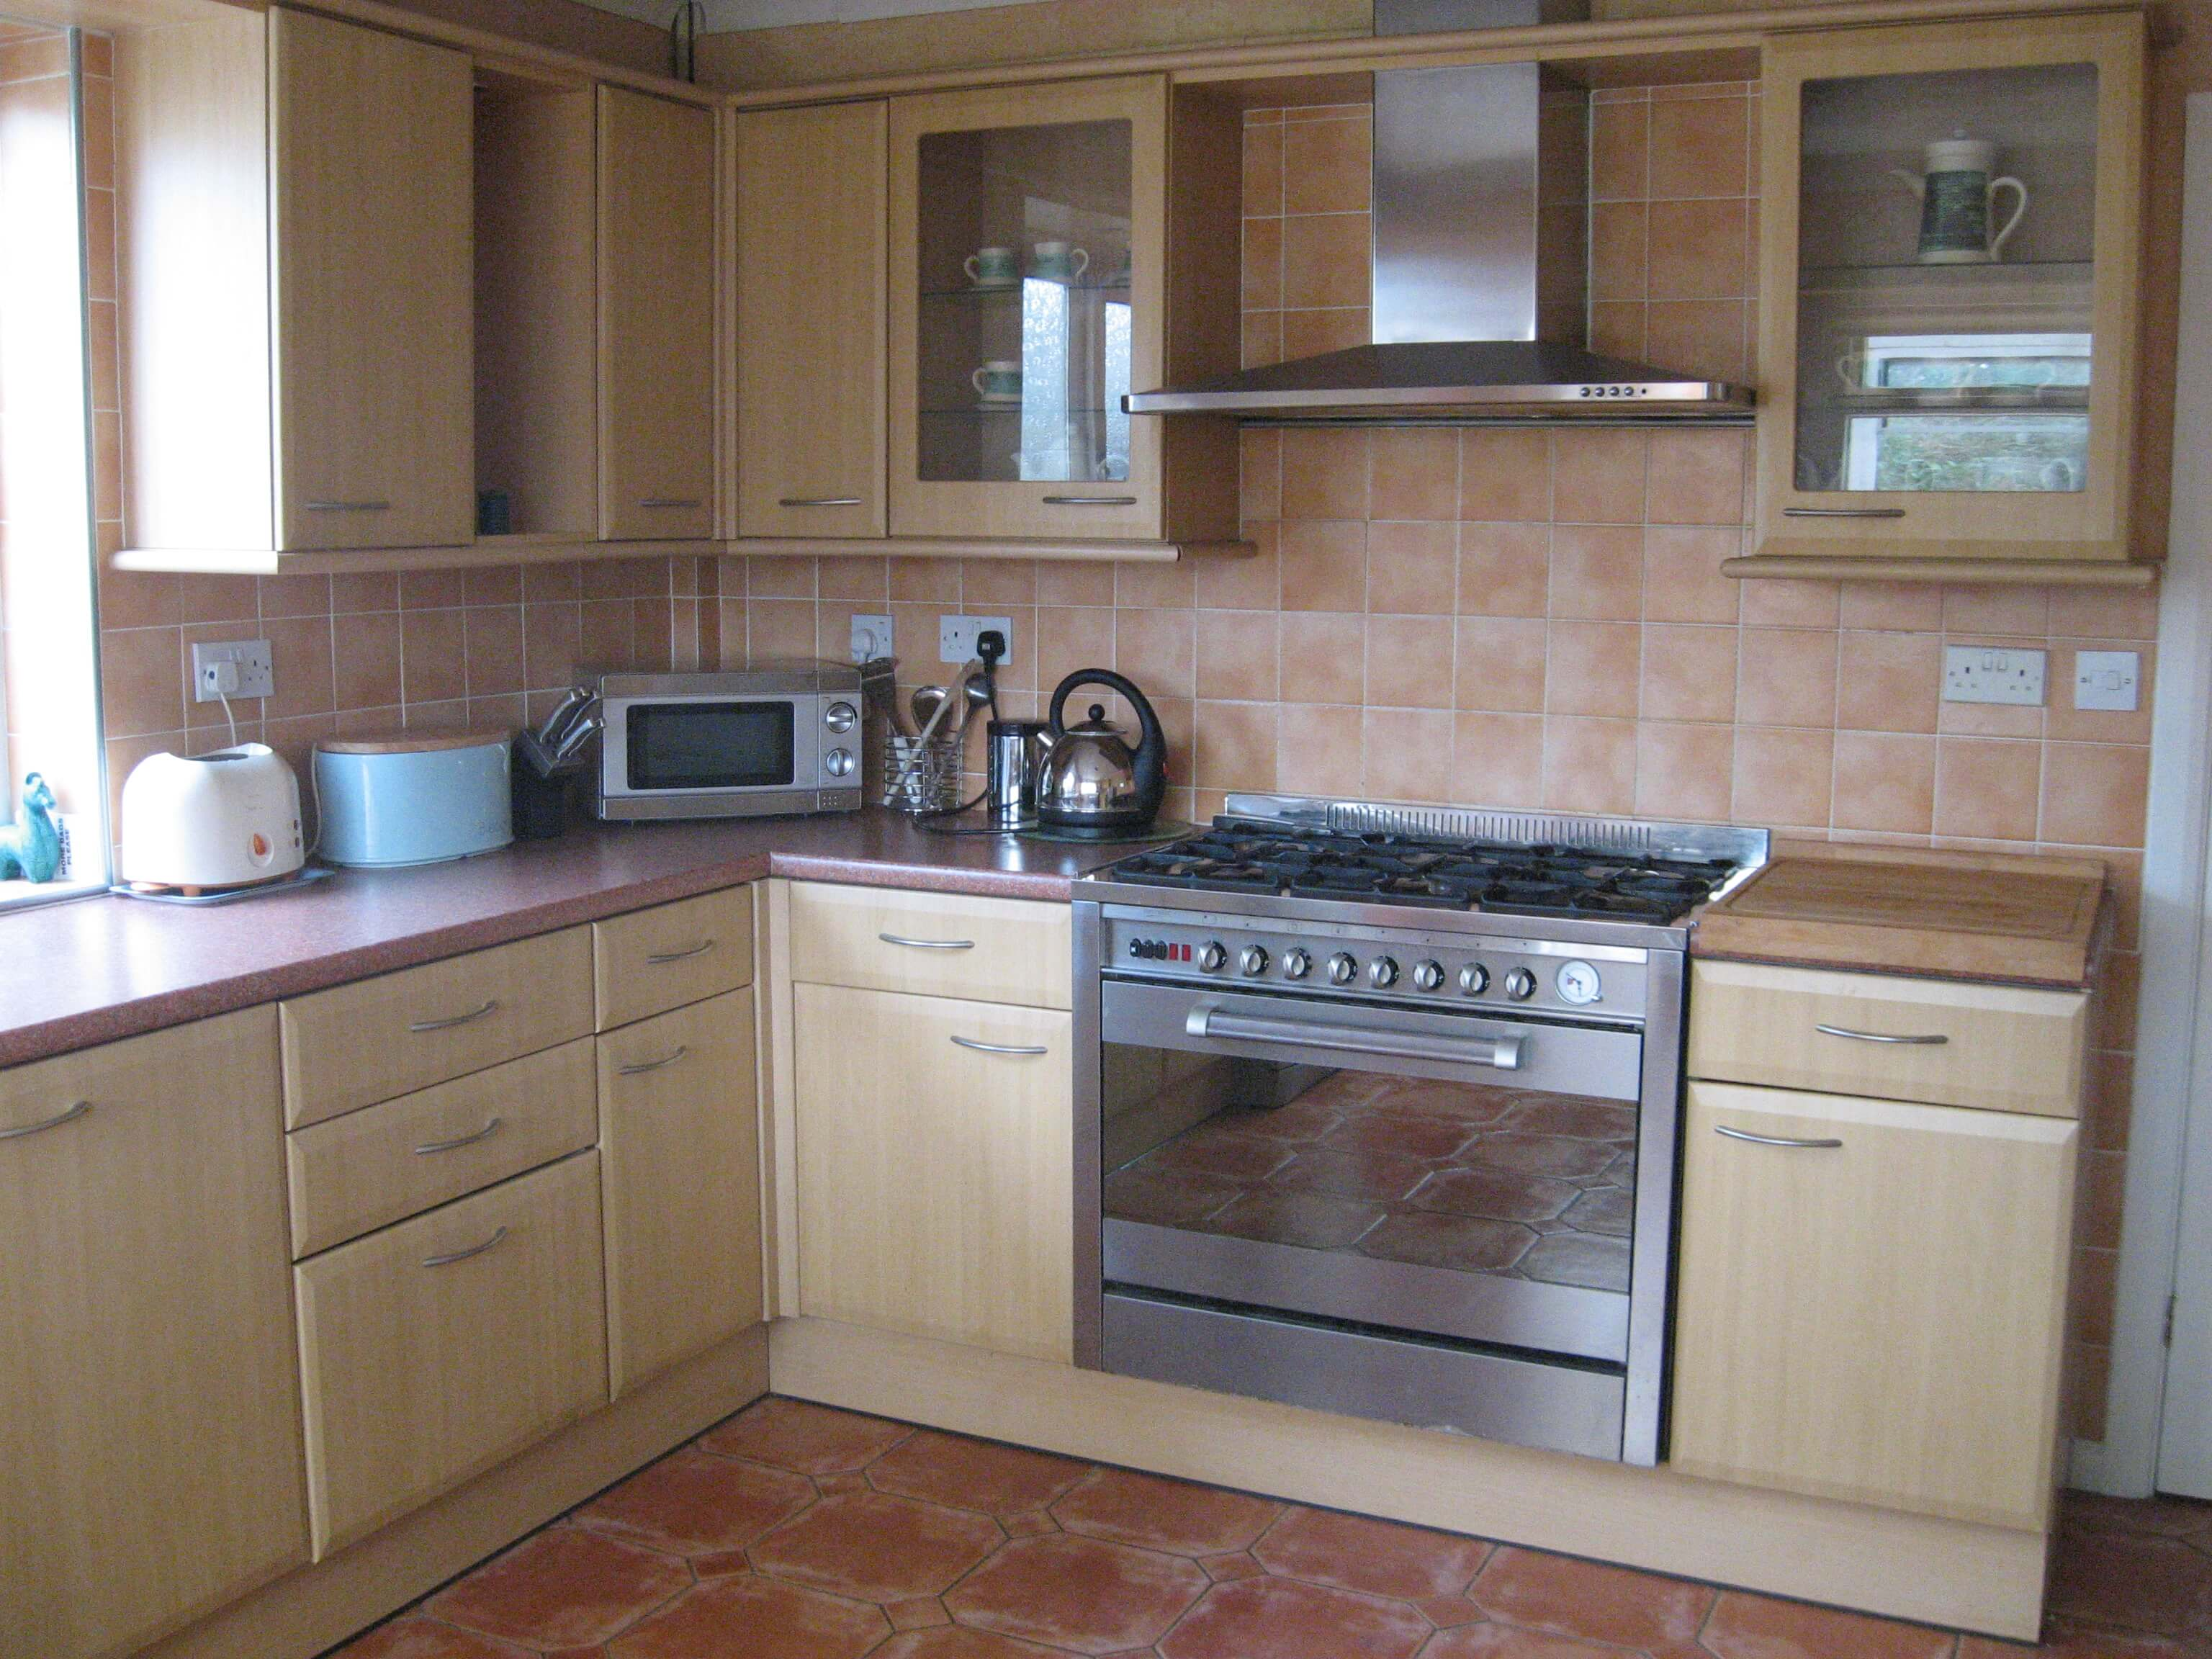 Gower Edge self catering   view of kitchen. Gower Self Catering Holidays   Take a tour of the facilities